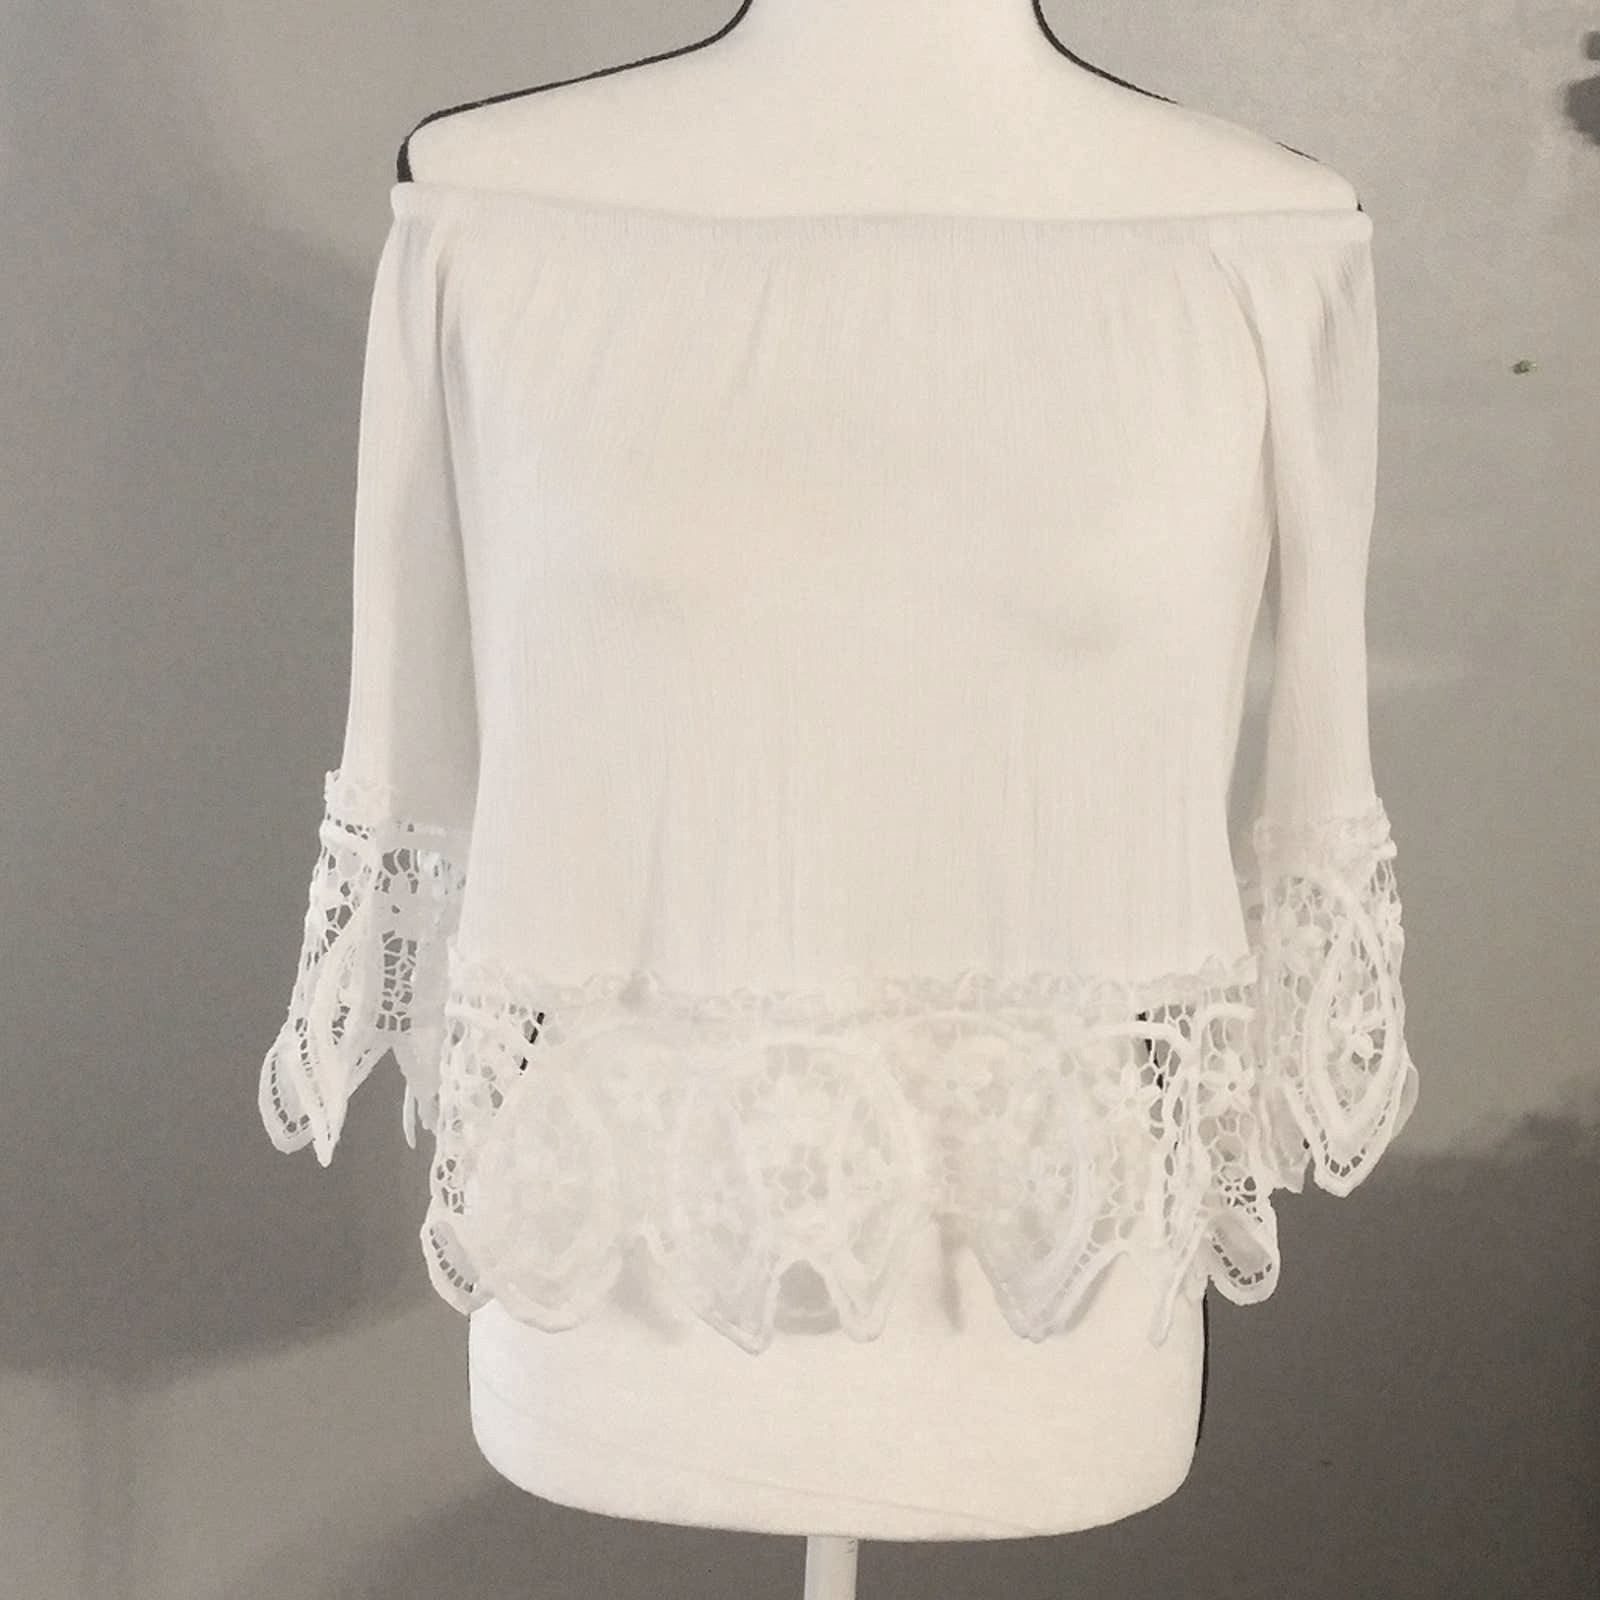 Ambiance White Lacey Fairycore crop top - image 4